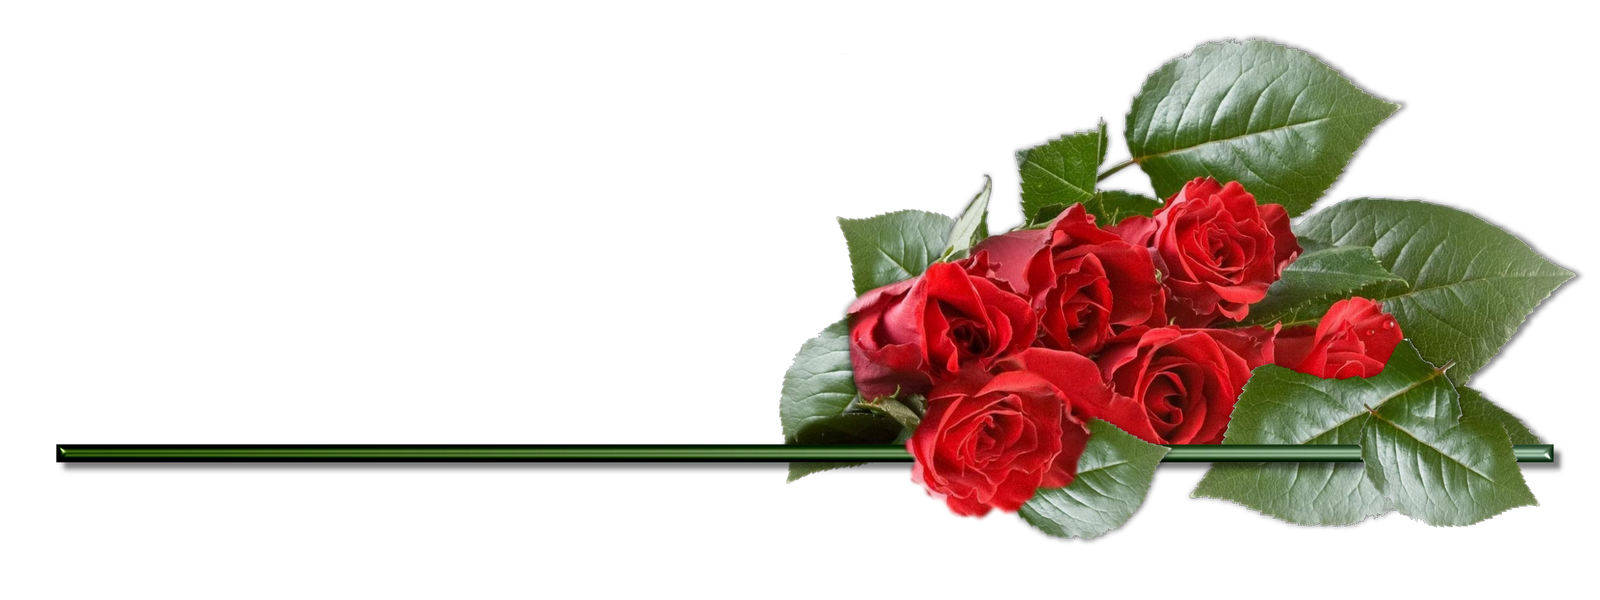 Garland clipart red rose. Divider free on dumielauxepices